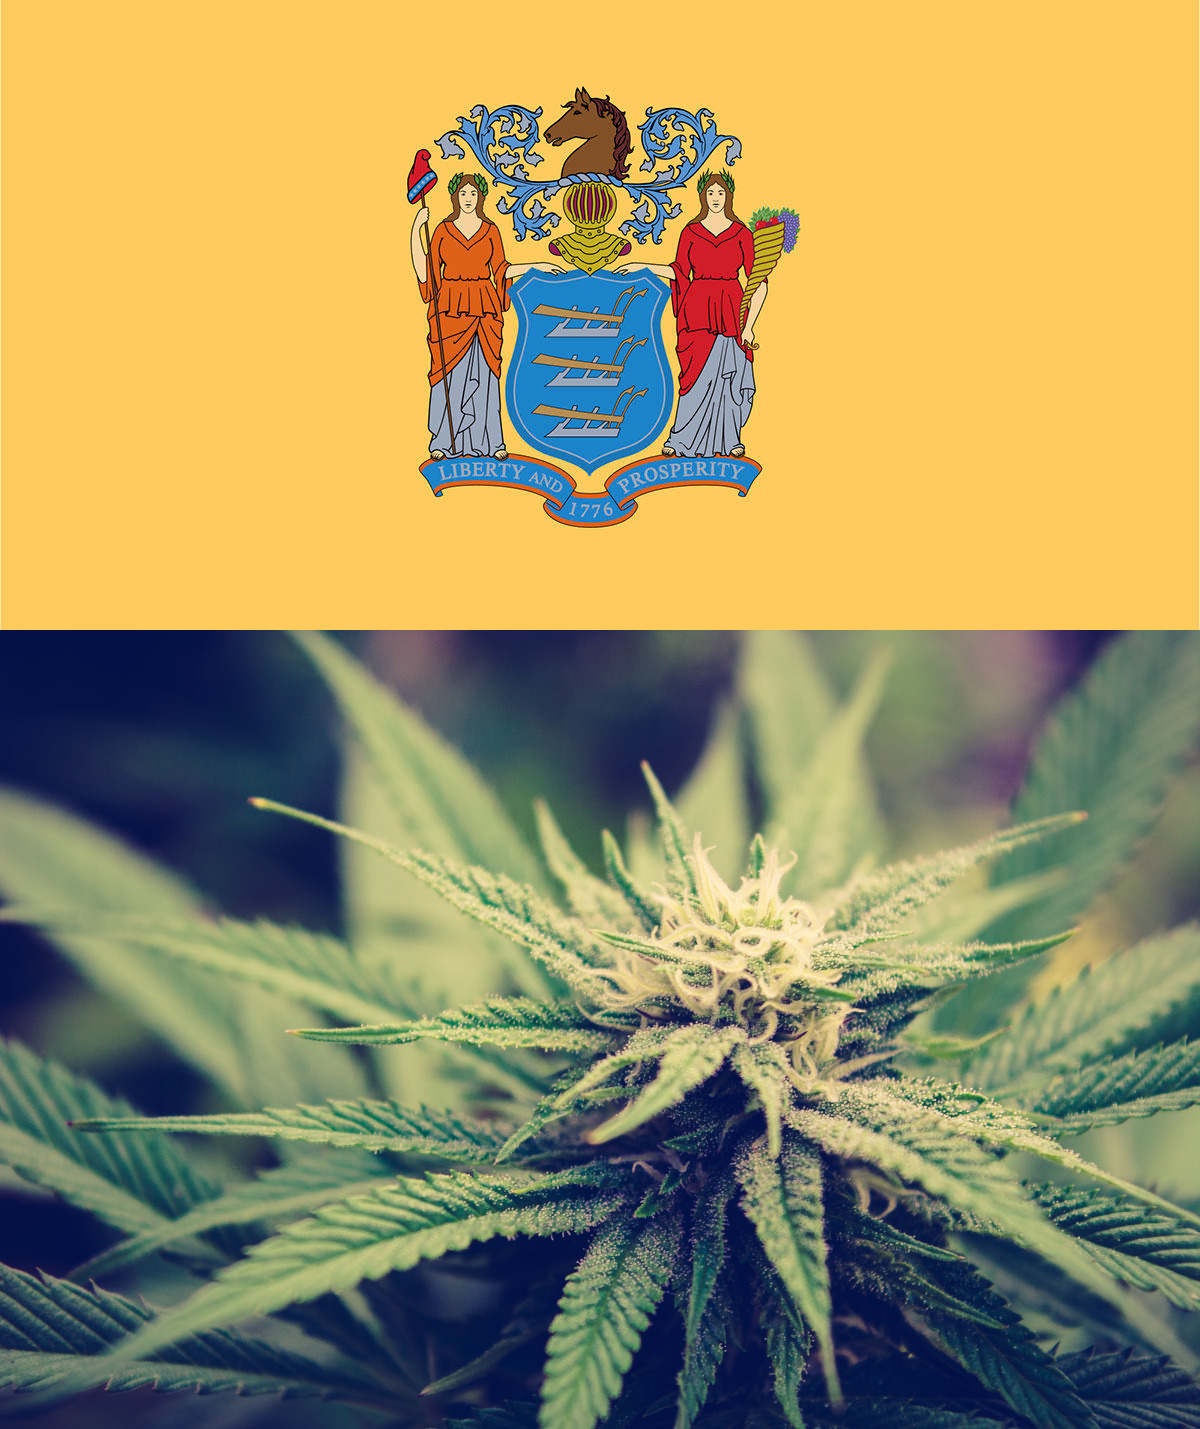 (Top) New Jersey state coat of arms. (Bottom) Marijuana plant.